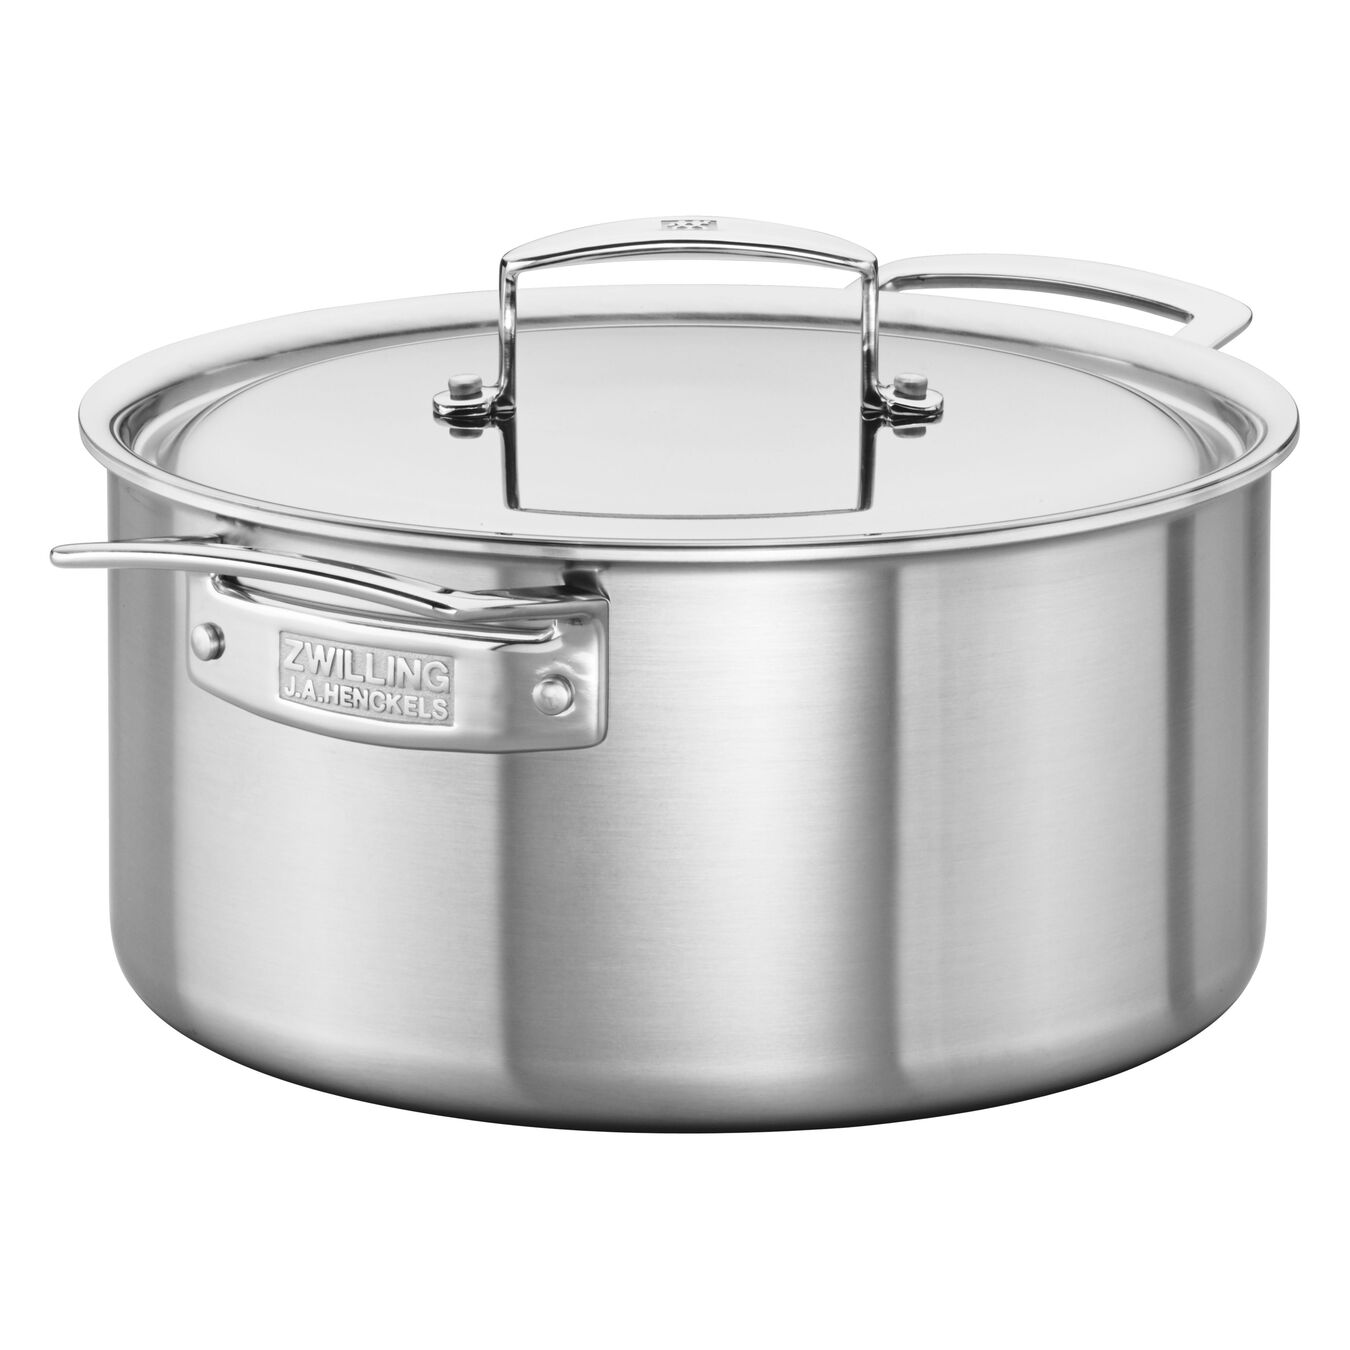 5.2 l 18/10 Stainless Steel Stock pot,,large 3